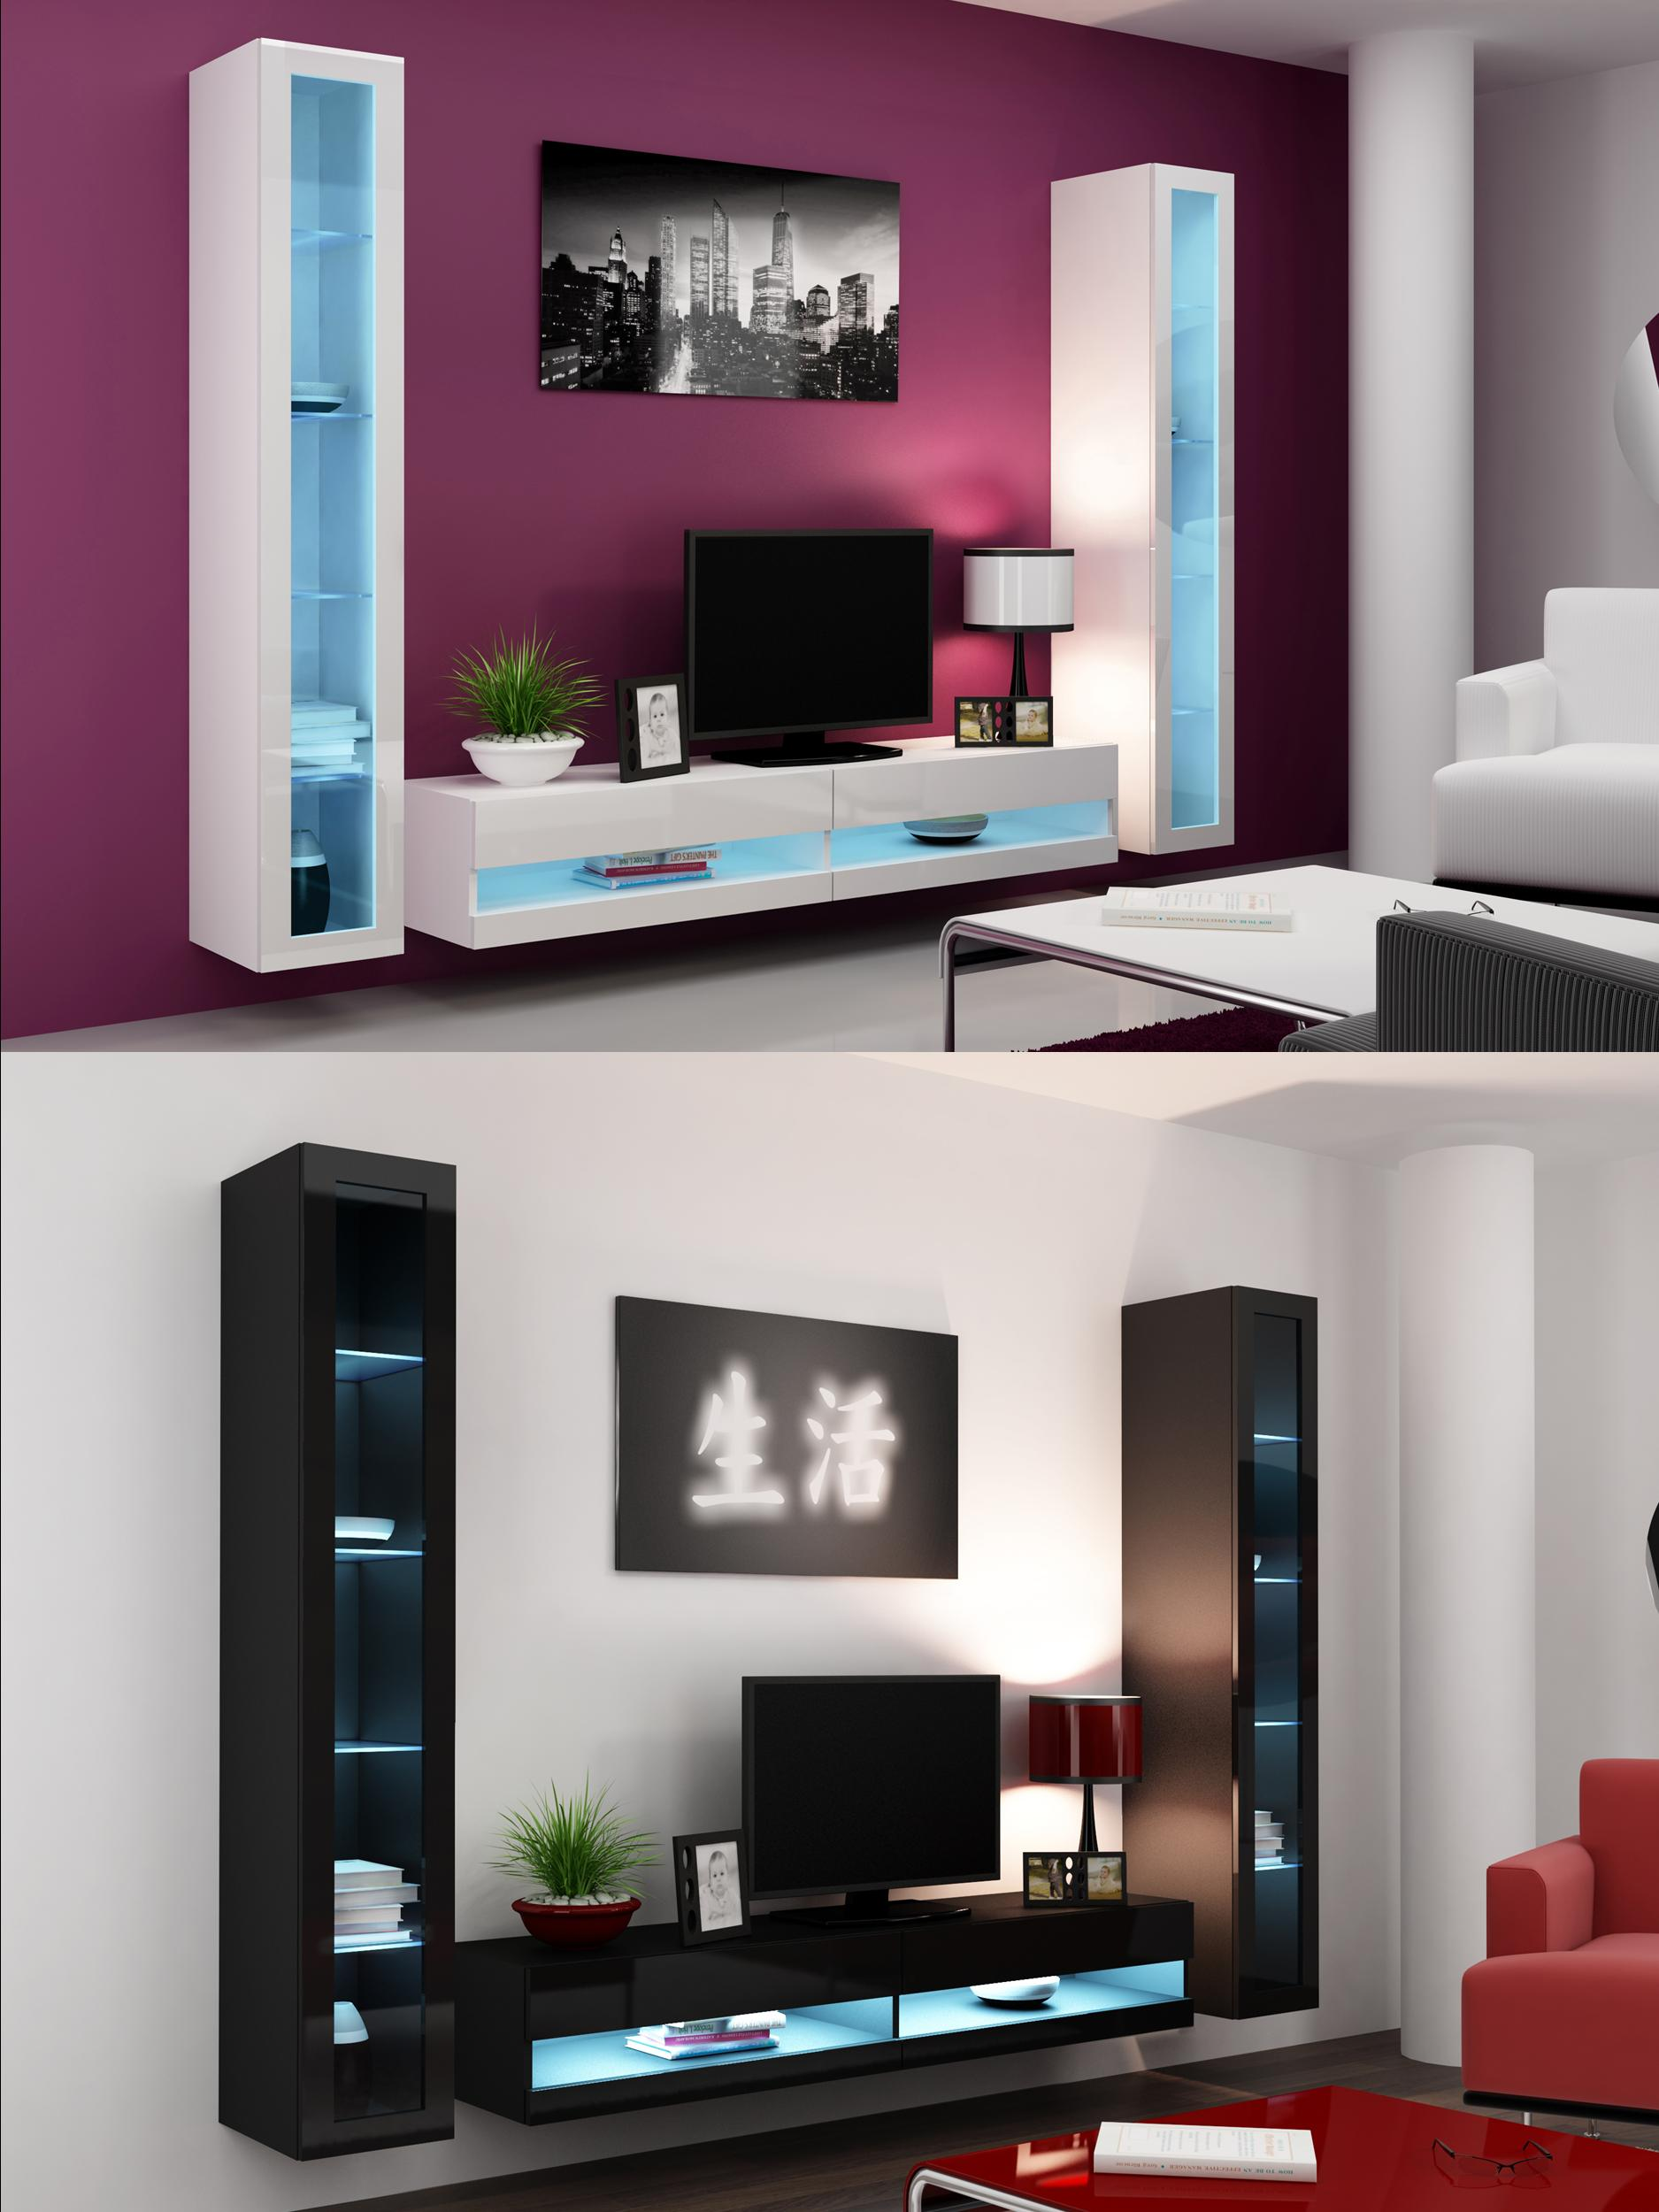 Led Tv Design Interiors Design # Meuble Tv Moderne Led